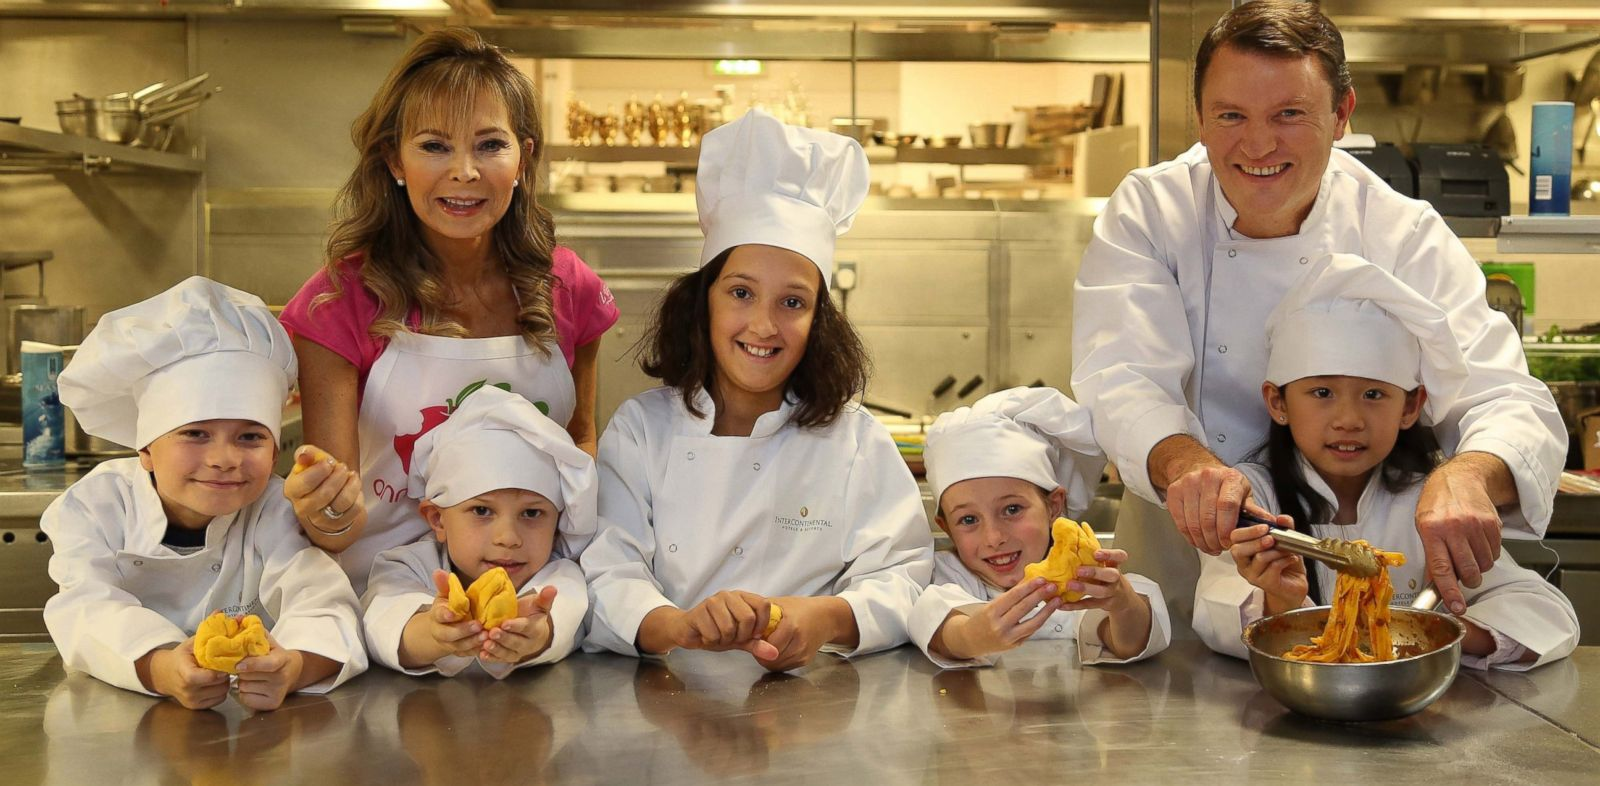 PHOTO: From left, children?s food expert Annabel Karmel MBE and chef Theo Randall